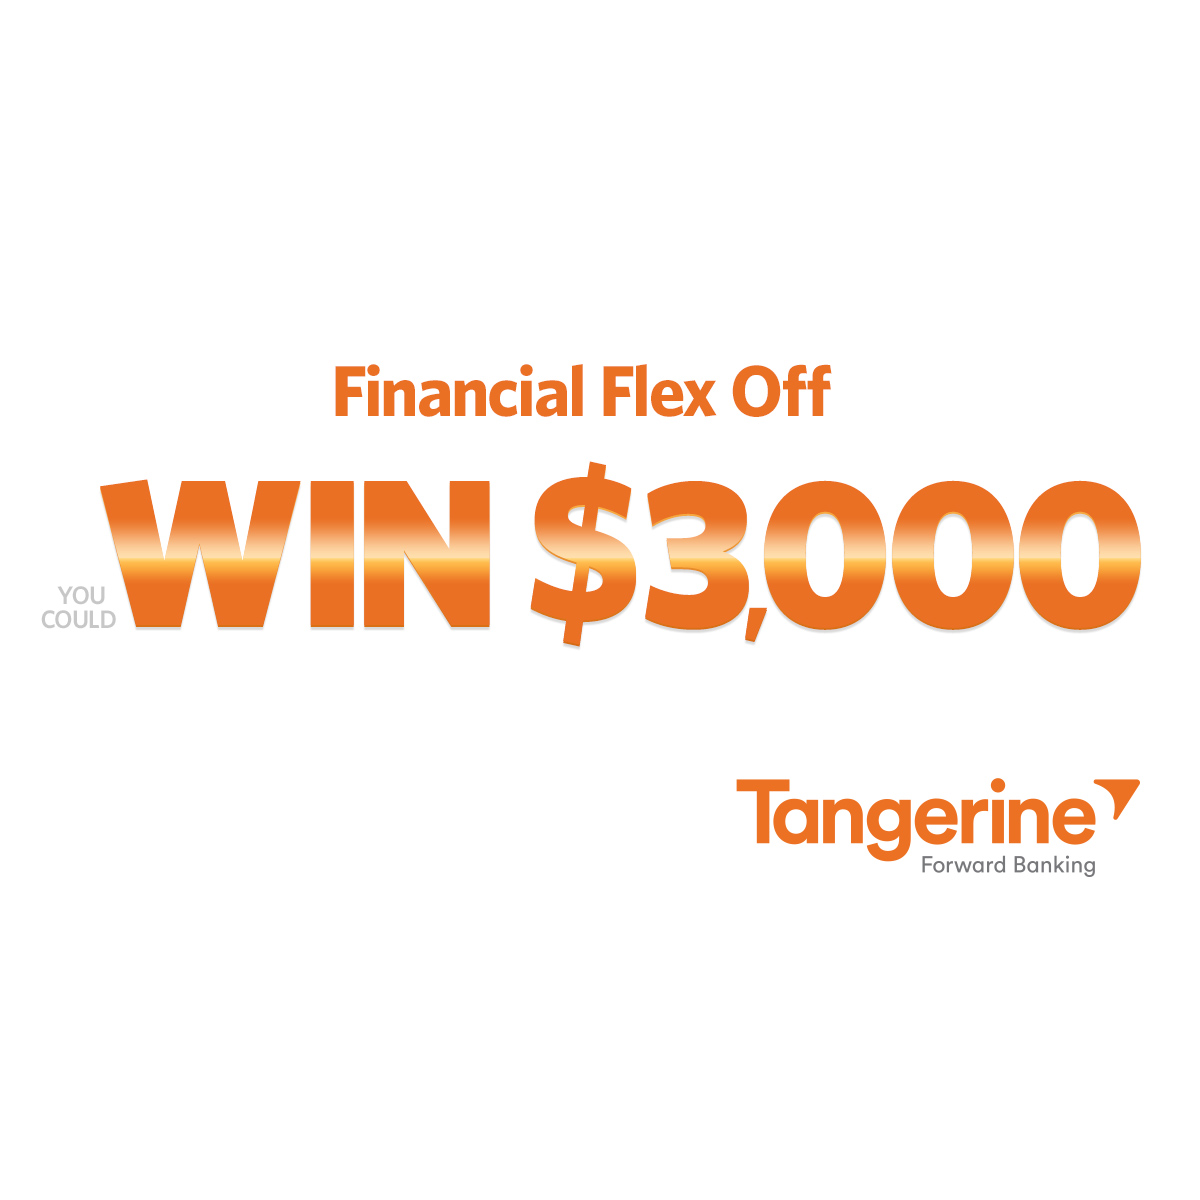 online contests, sweepstakes and giveaways - Financial Flex Off